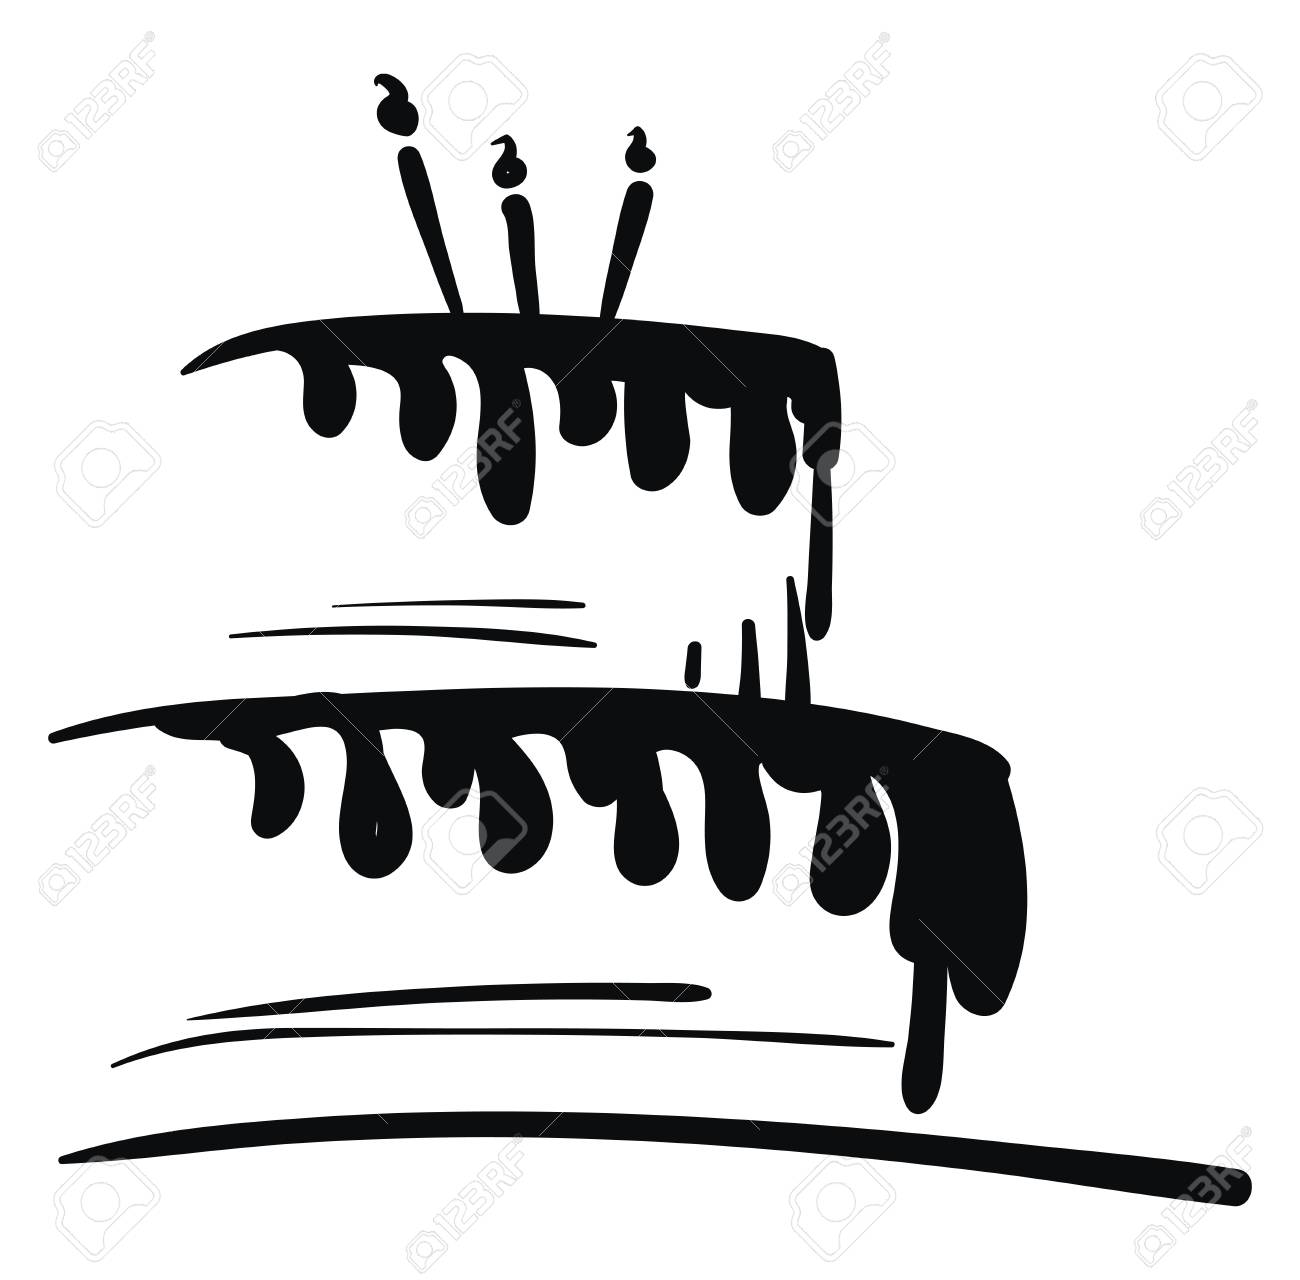 Fabulous Black And White Birthday Cake Vector Or Color Illustration Royalty Funny Birthday Cards Online Alyptdamsfinfo